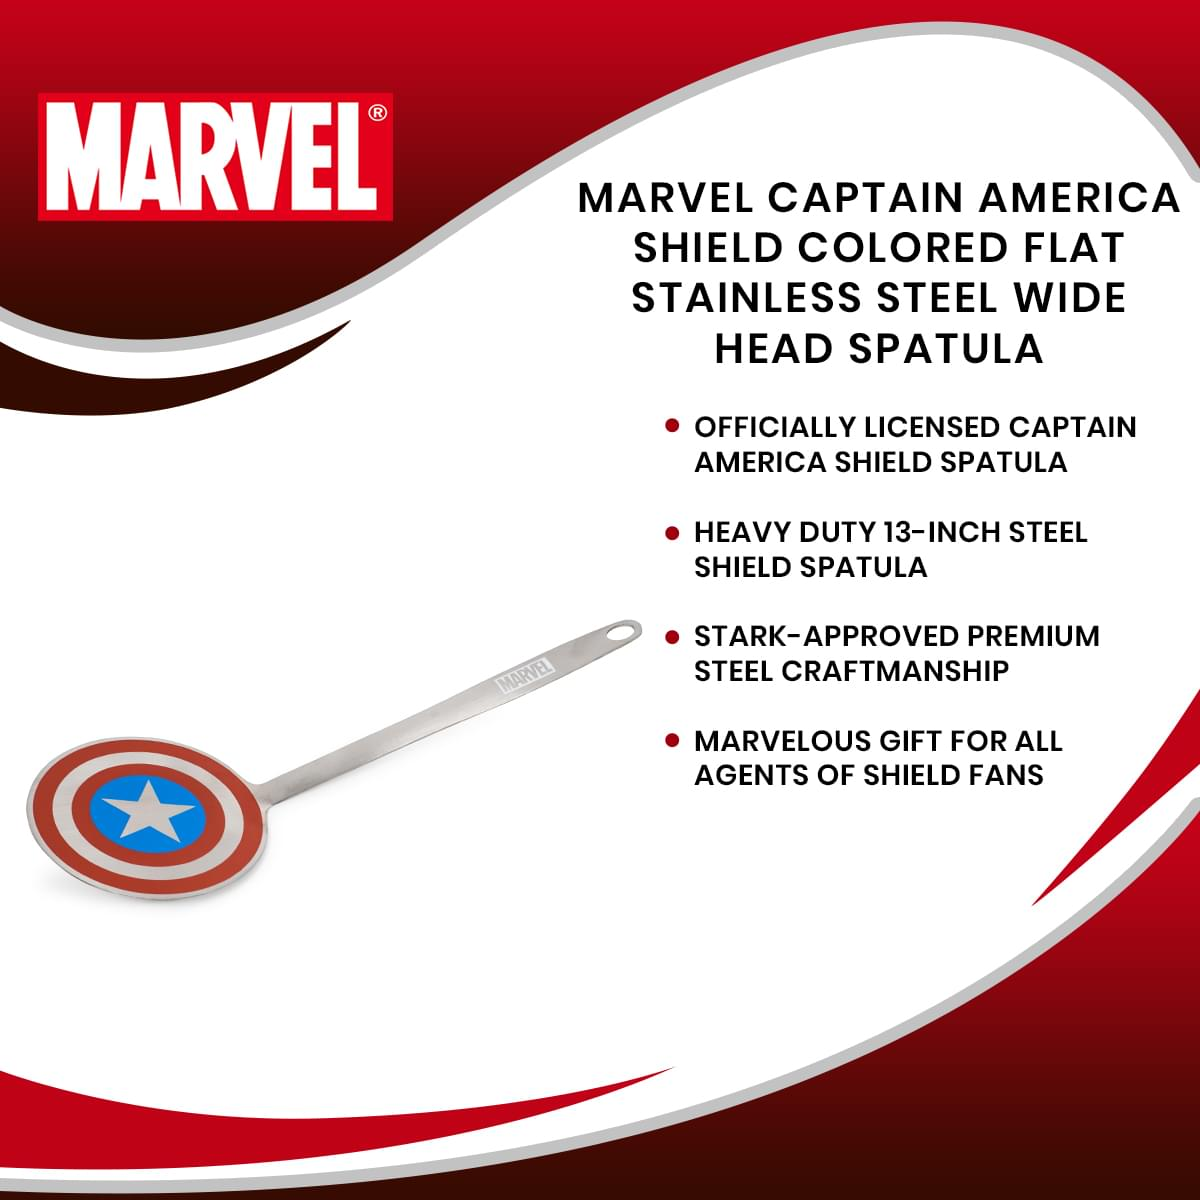 Marvel Captain America Shield Colored Flat Stainless Steel Wide Head Spatula